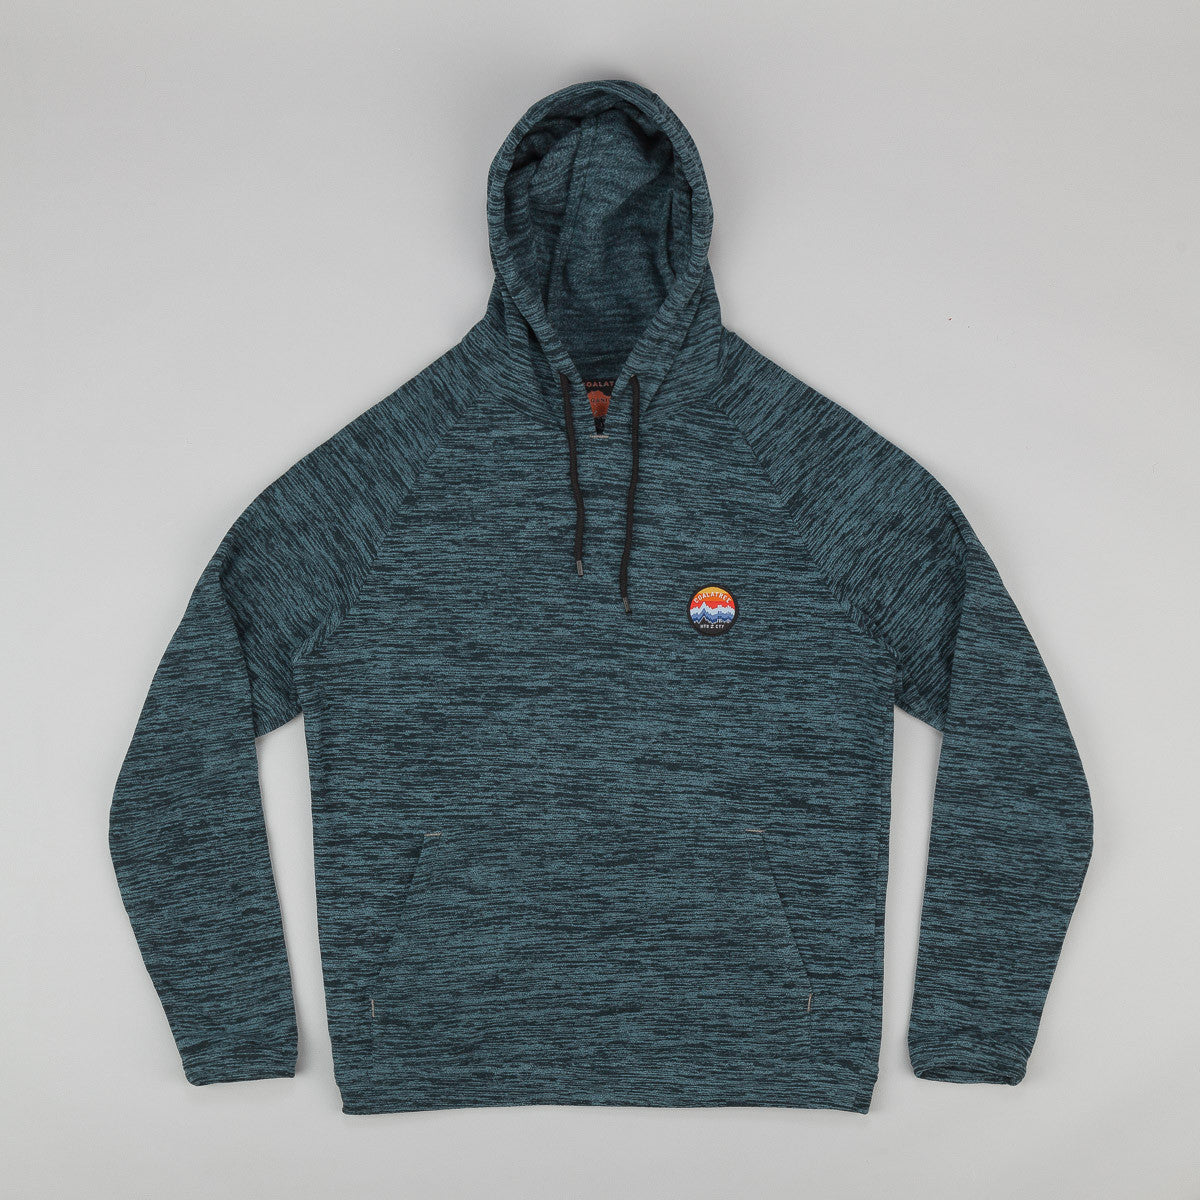 Coalatree Cabin Fever Hooded Sweatshirt